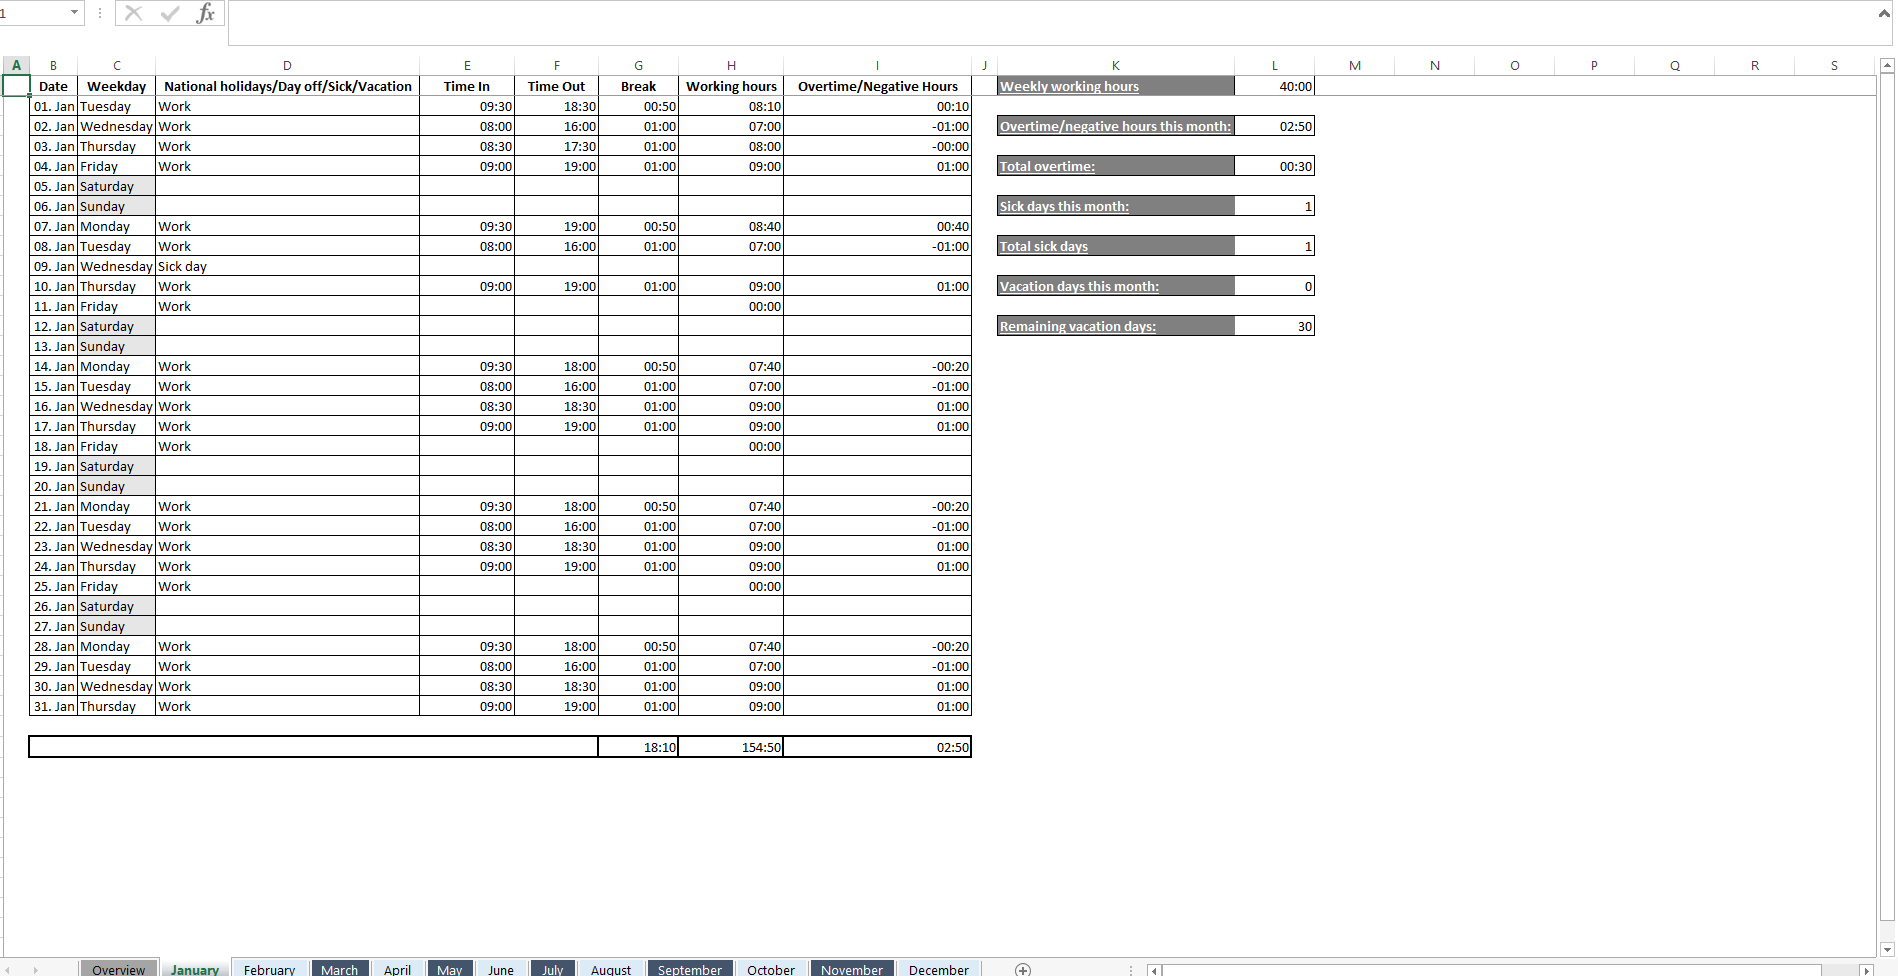 Excel Monthly Timesheet Template With Formulas from www.ionos.com